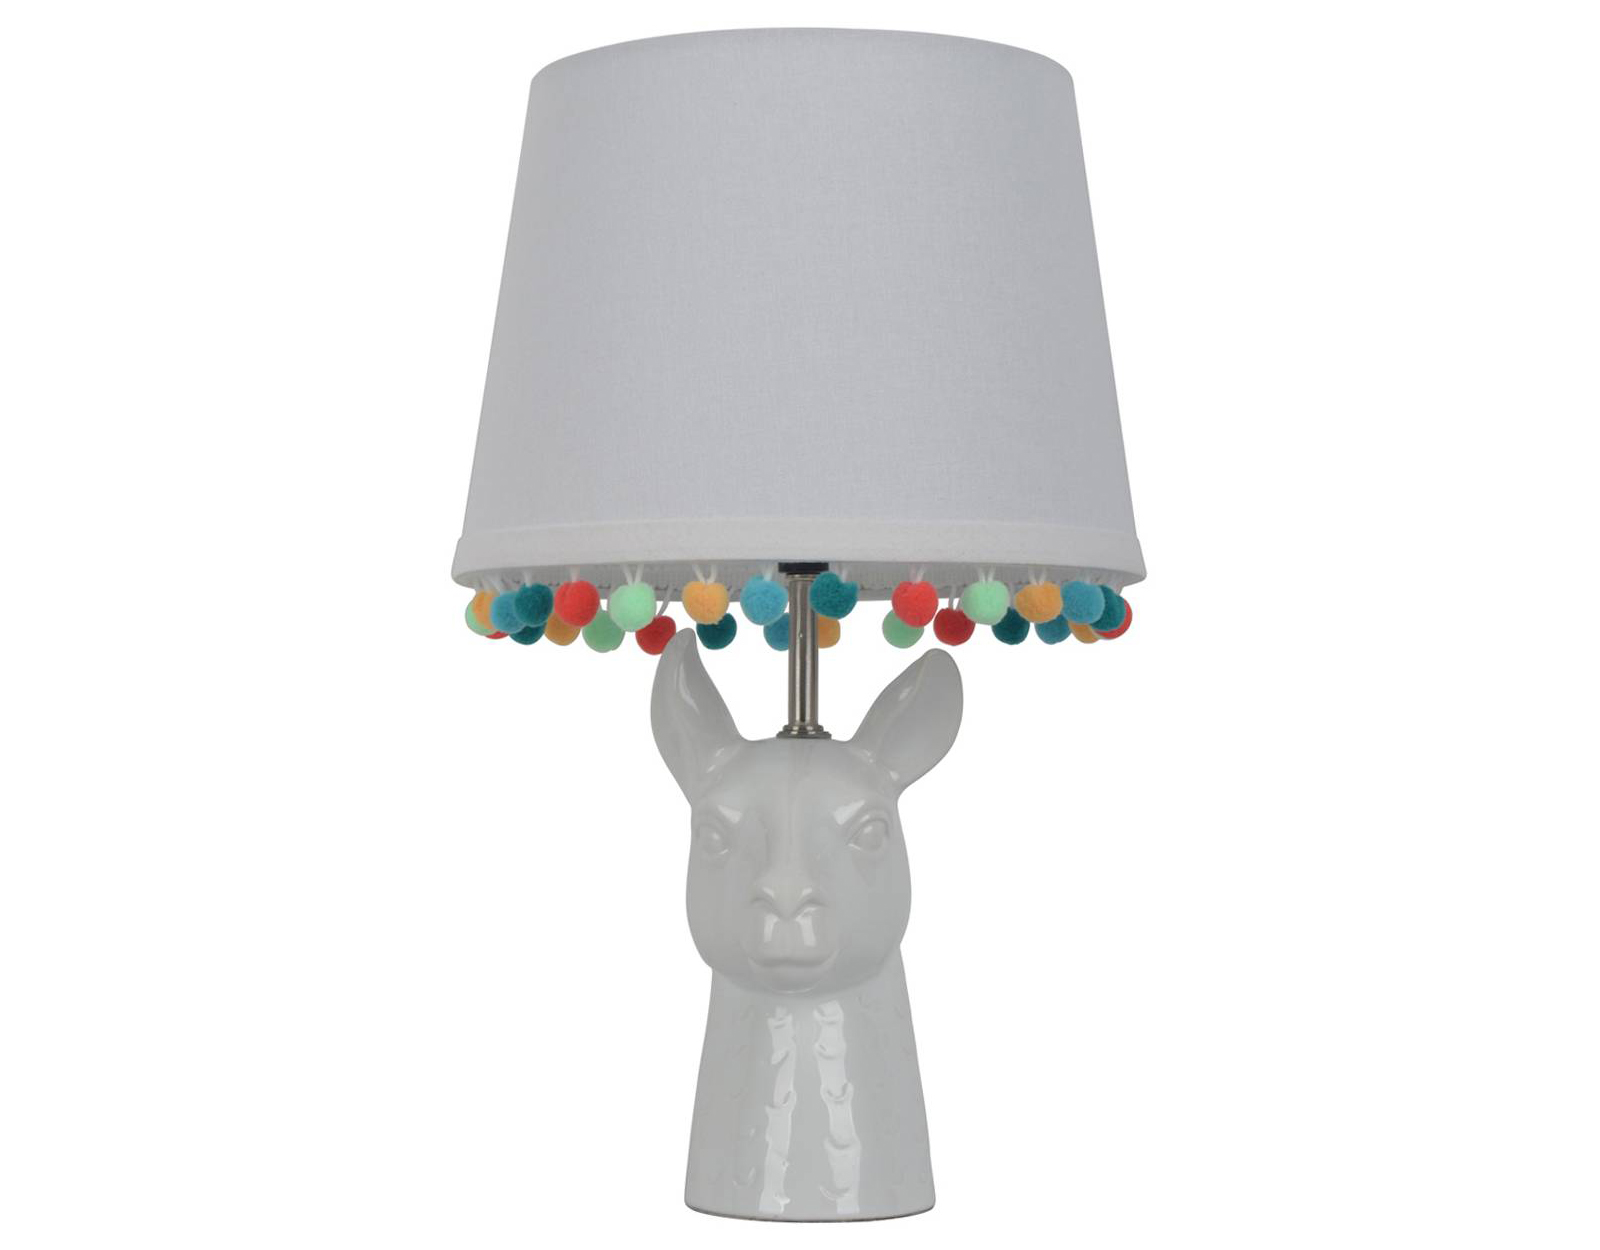 Nursery Touch Lamp Llama Nursery Decor Trend Project Nursery